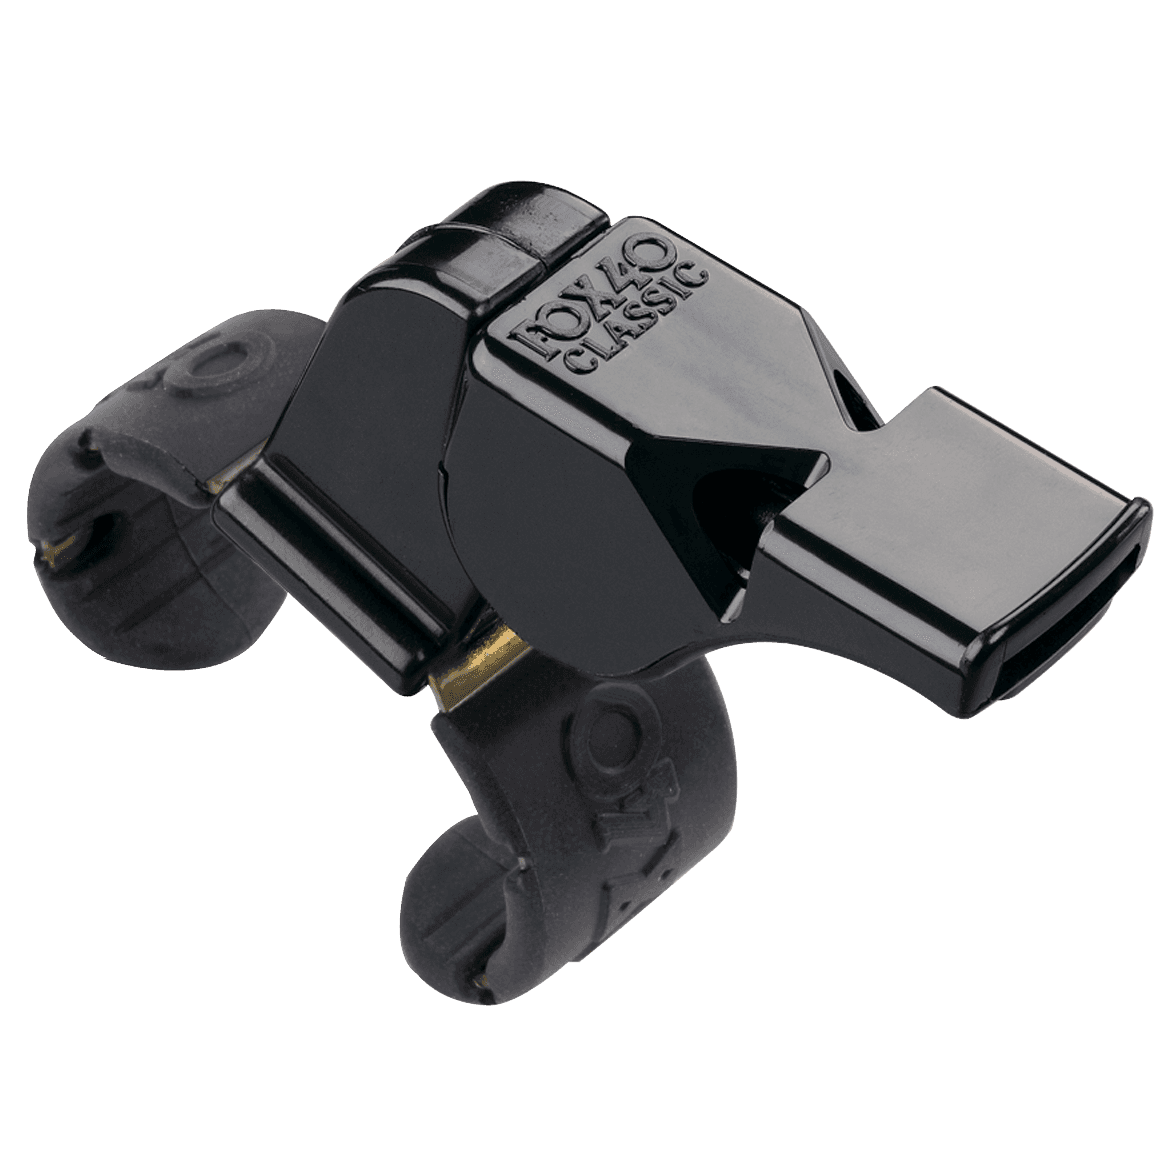 Fox 40 Classic Official Fingergrip Whistle